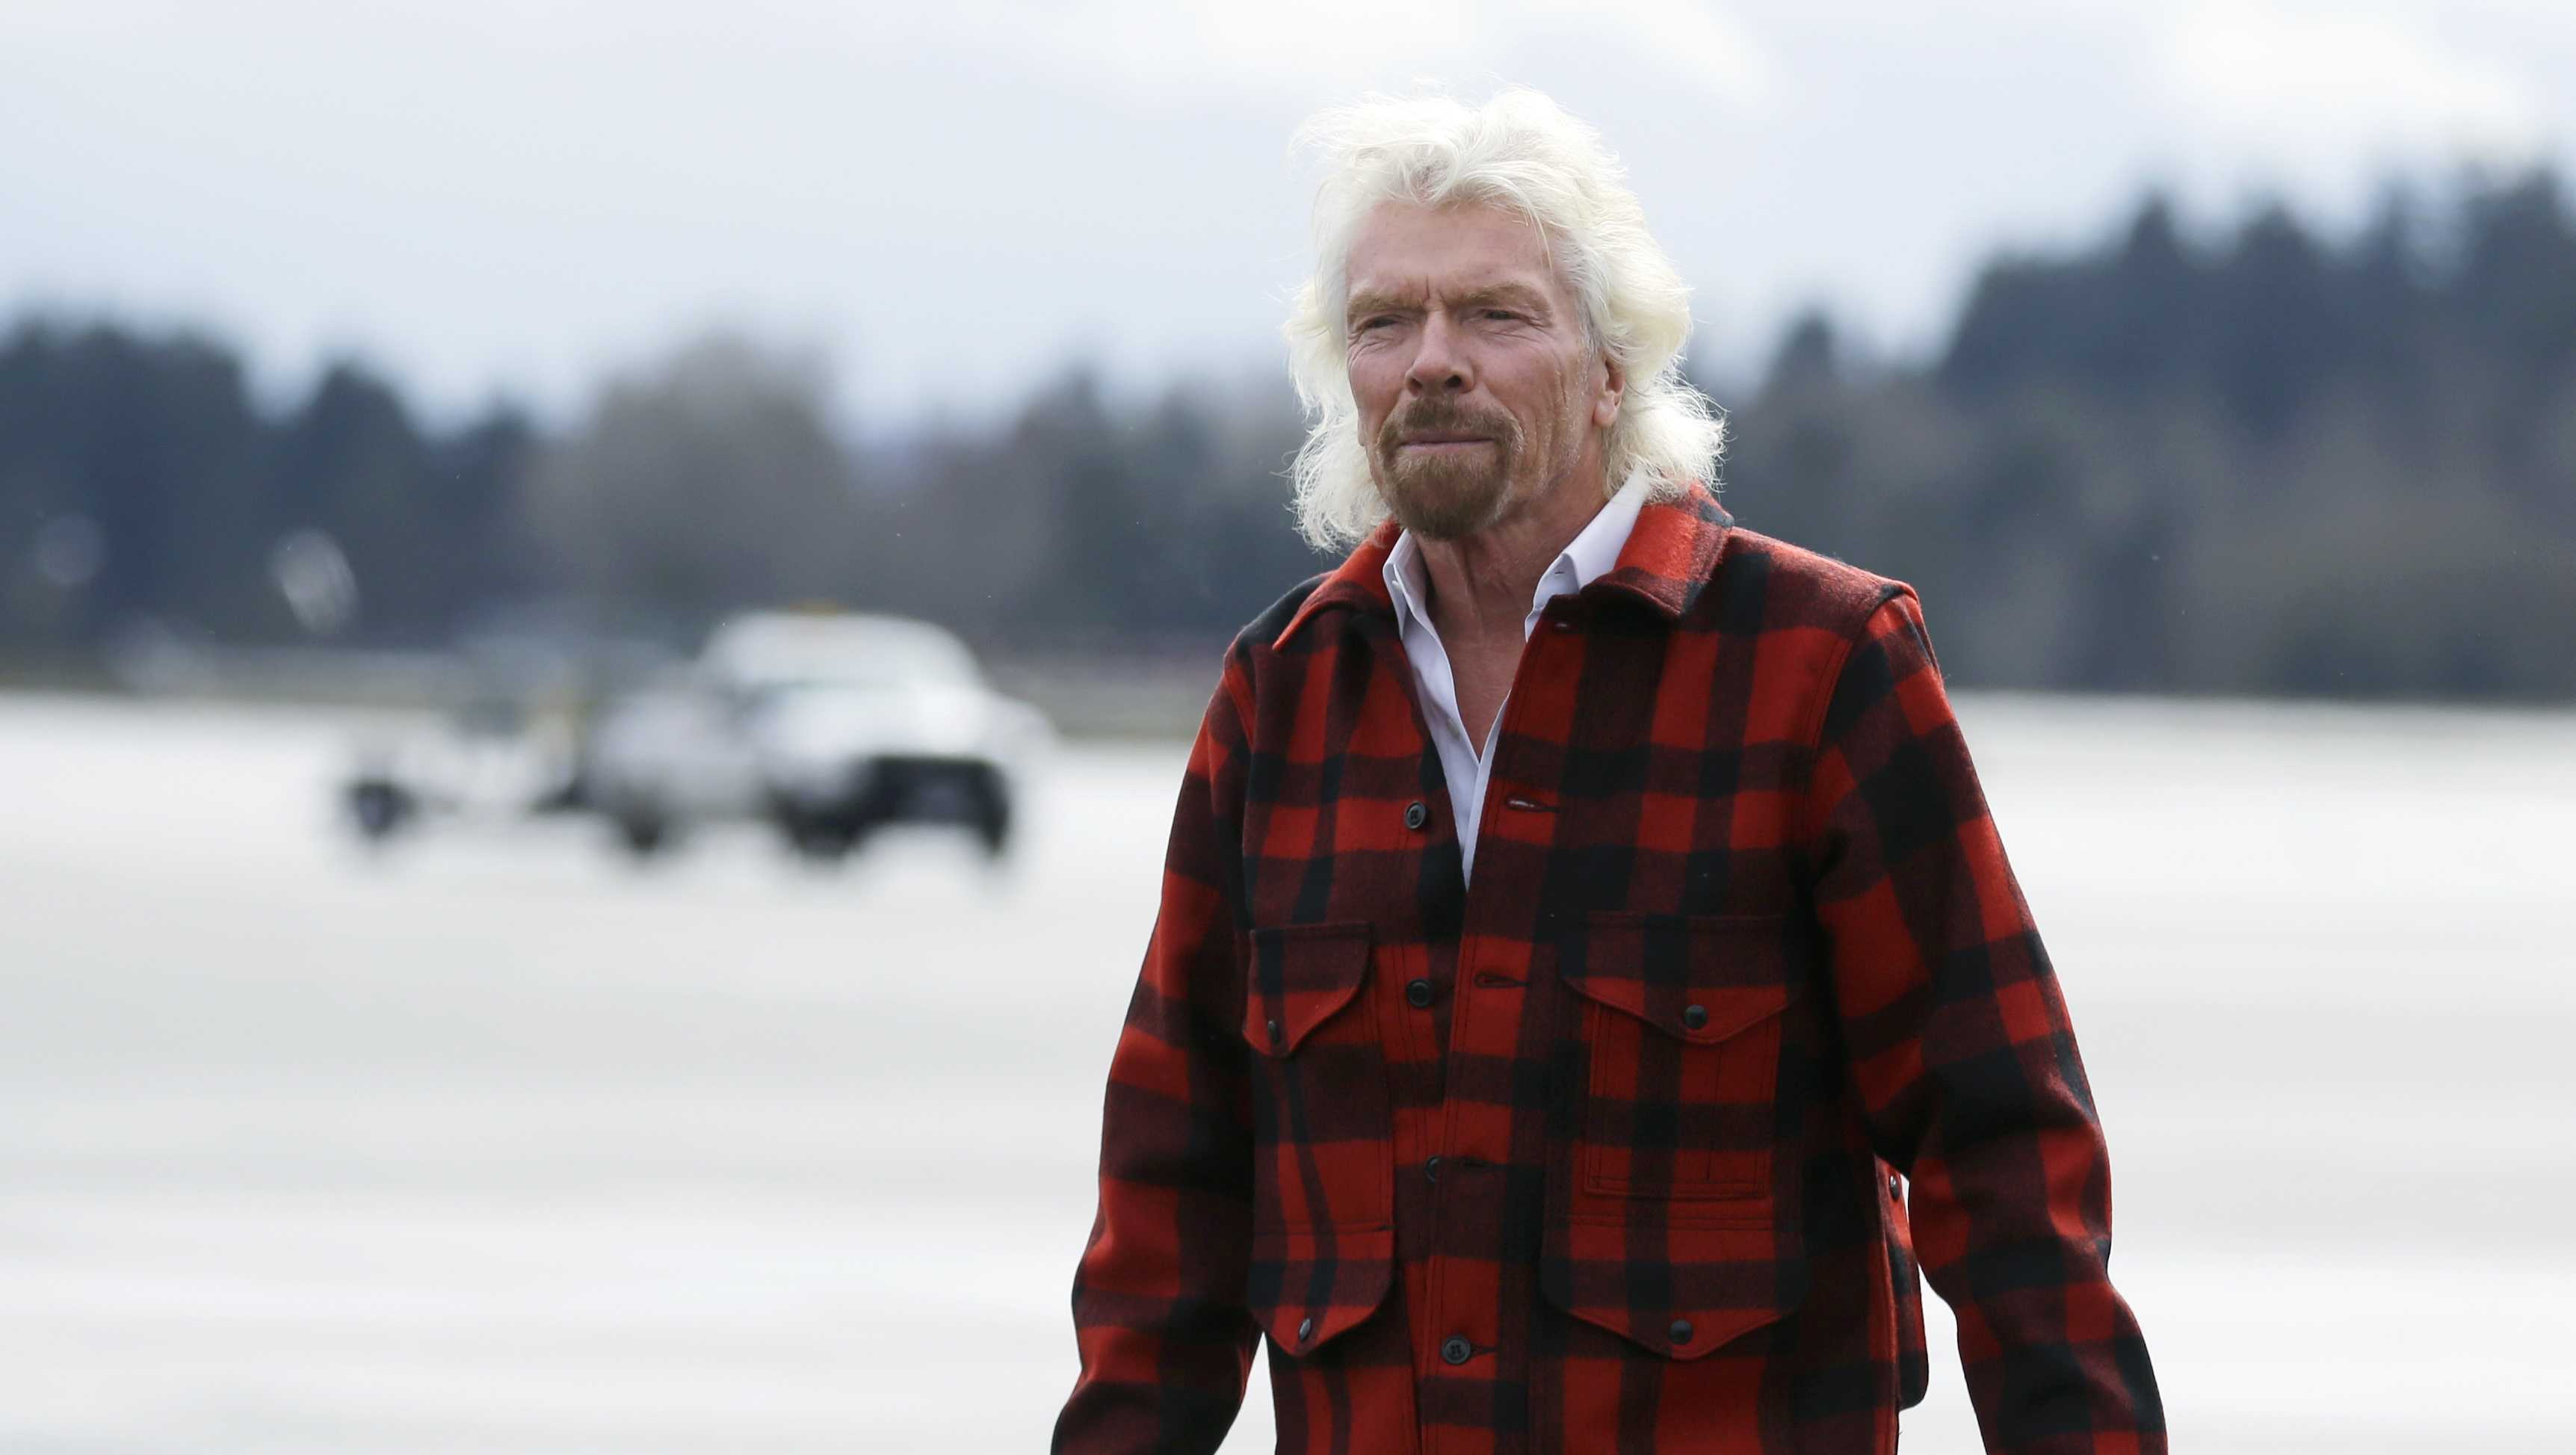 Sir Richard Branson, founder of Virgin Atlantic and the Virgin Group, walks on the tarmac after he arrived on a flight from London to Seattle, Monday, March 27, 2017, at Seattle-Tacoma International Airport in Seattle.